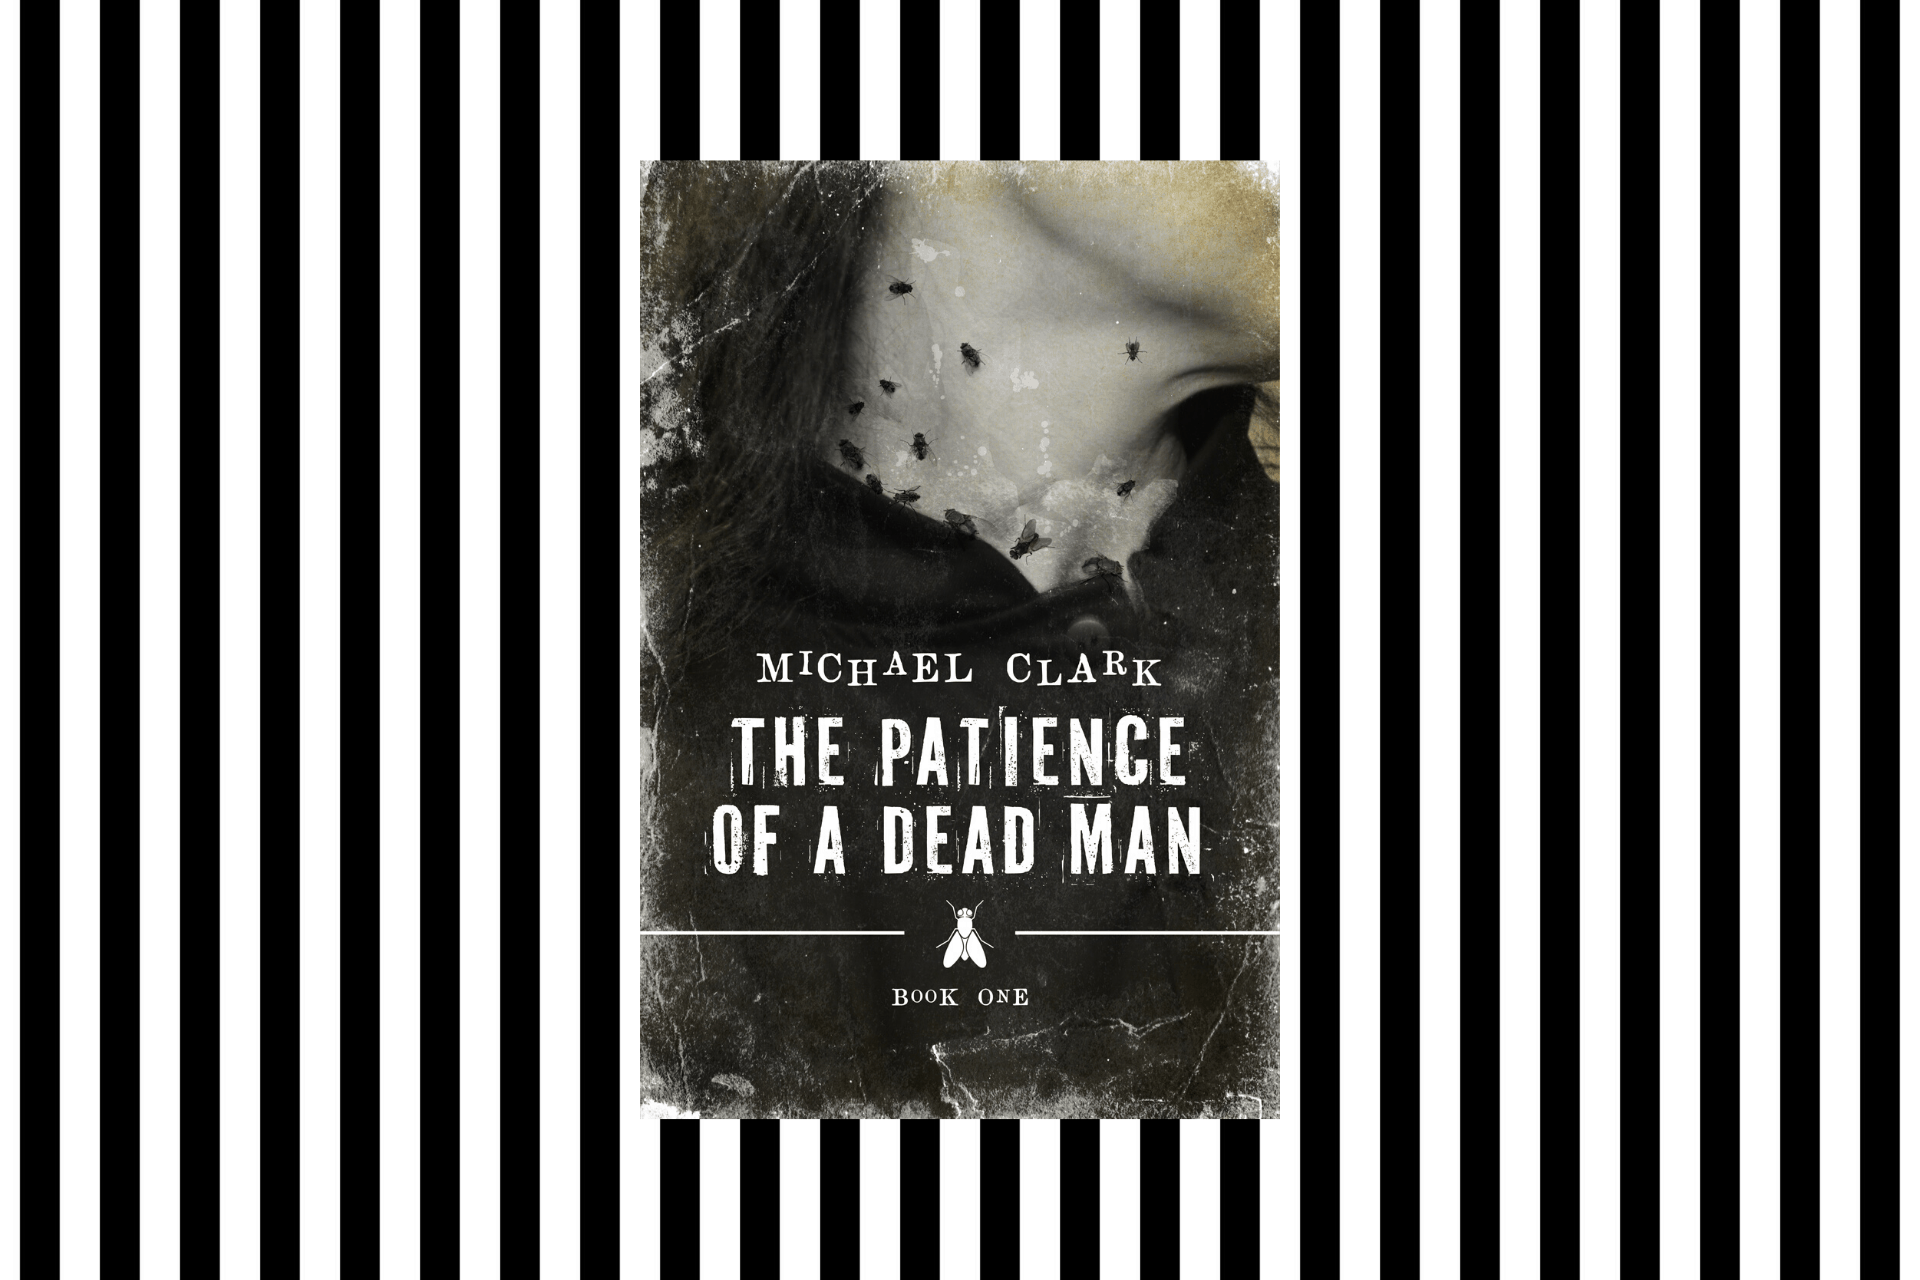 The Patience of a Dead Man, by Michael Clark